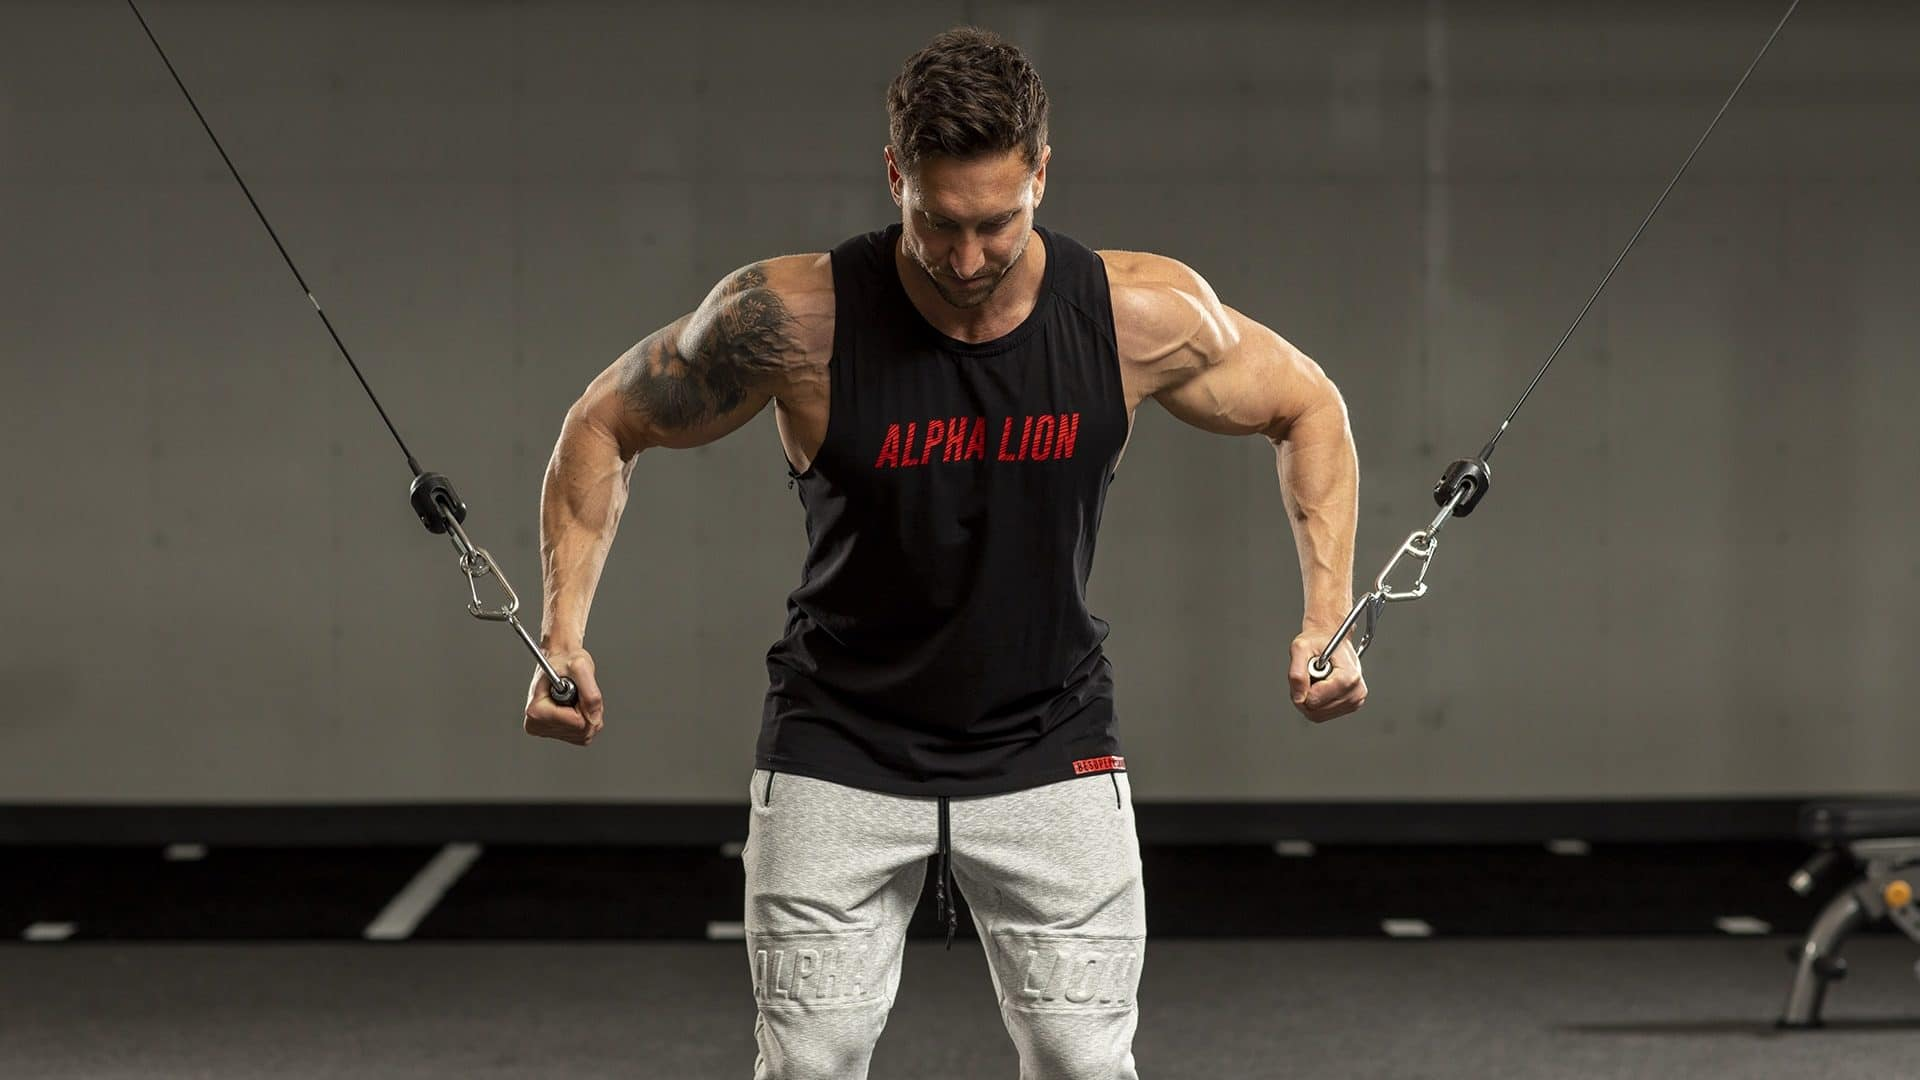 Troy muscle gain exercise